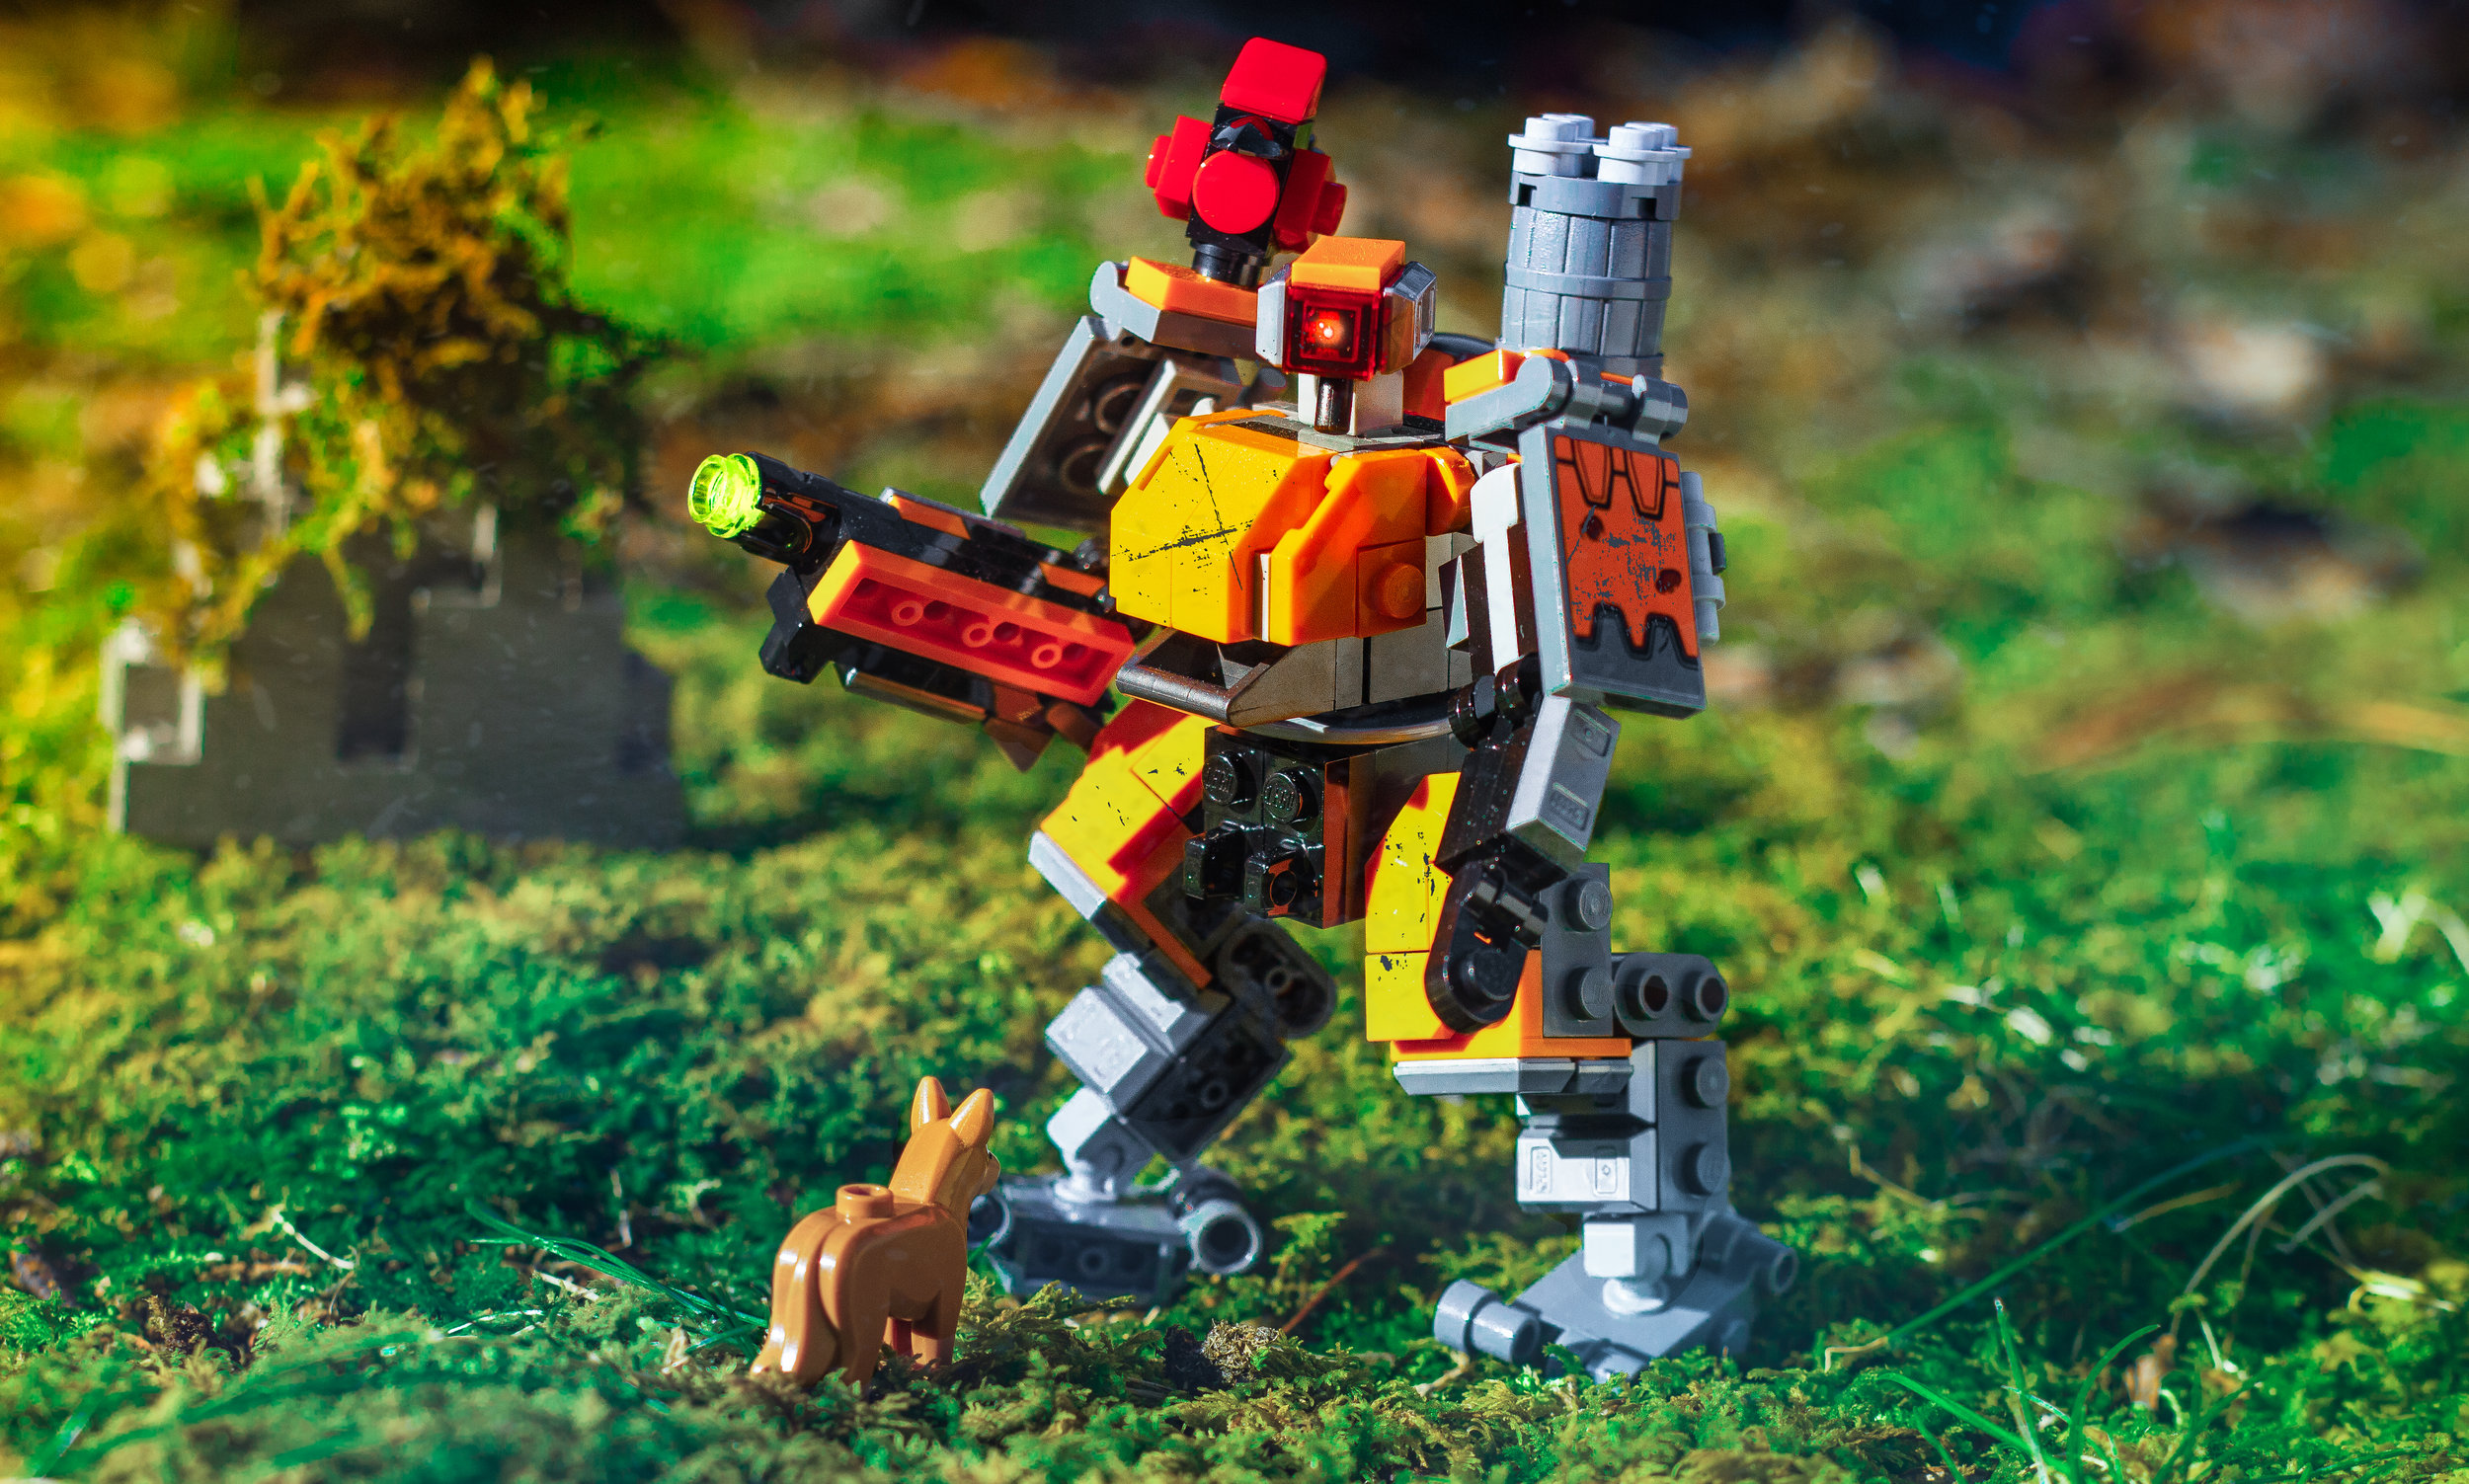 Bastion_Final_THIS_ONE-100001.jpg